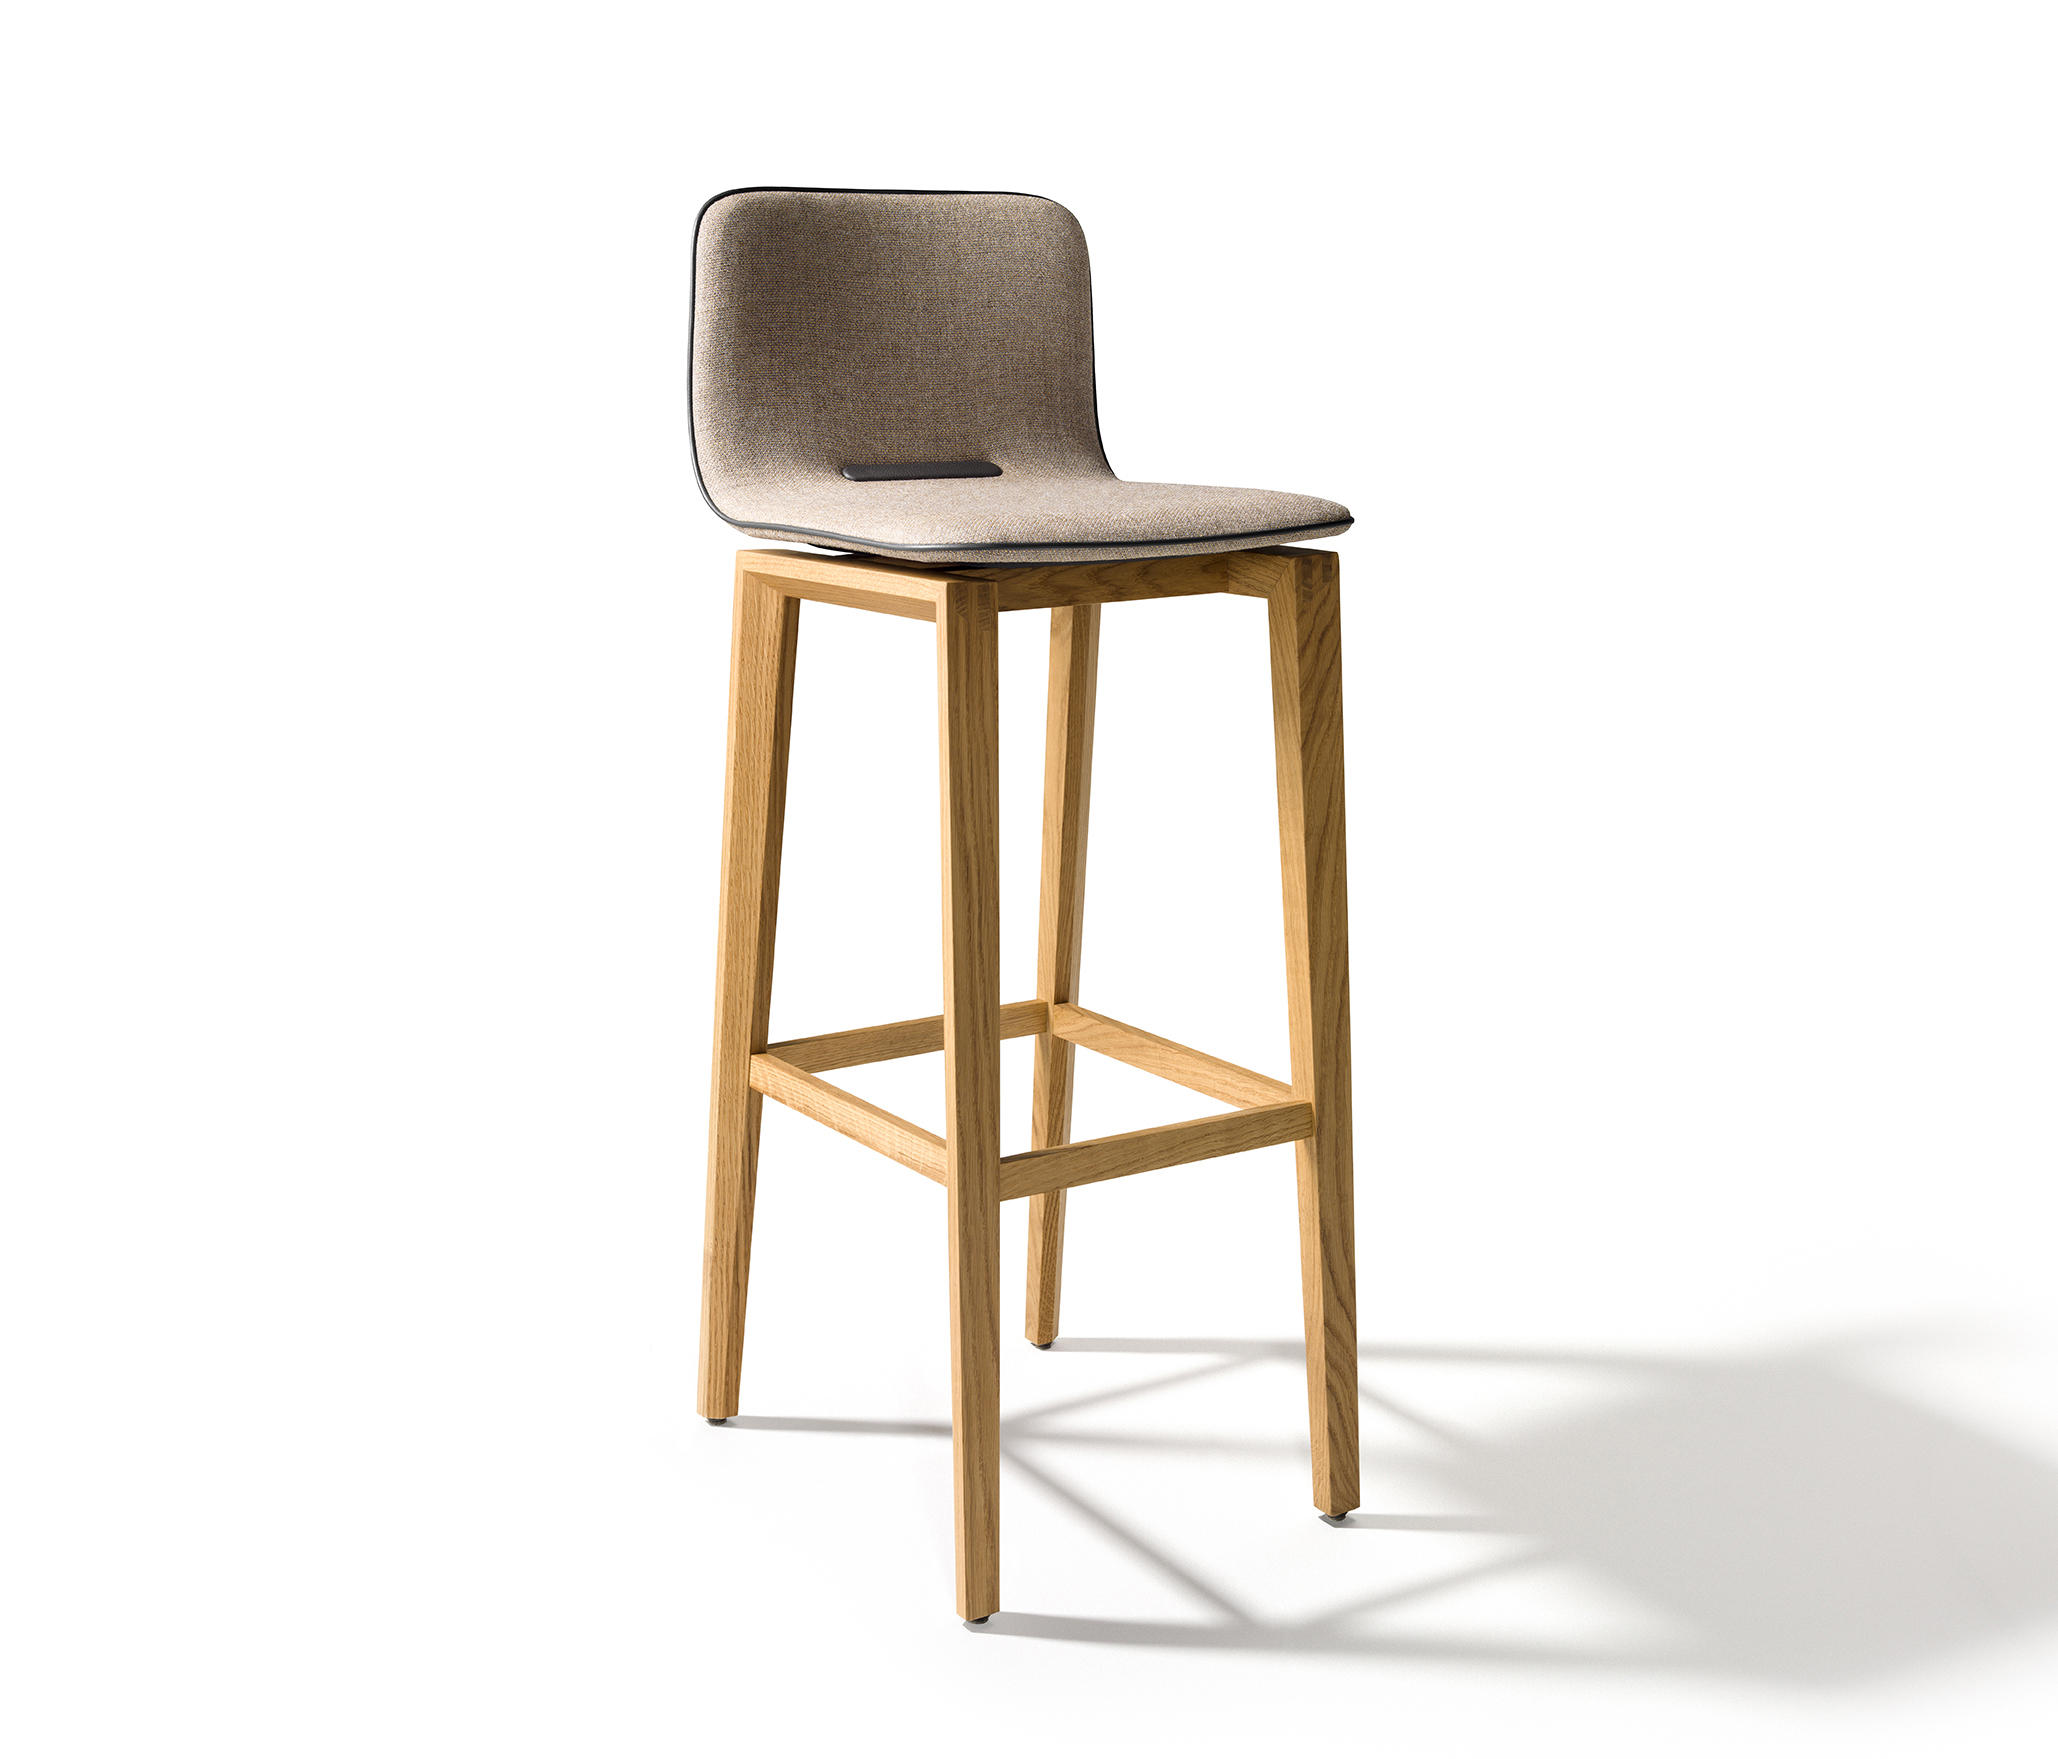 7Architonic Team Ark Tabouret De Bar Tabourets trQdshC